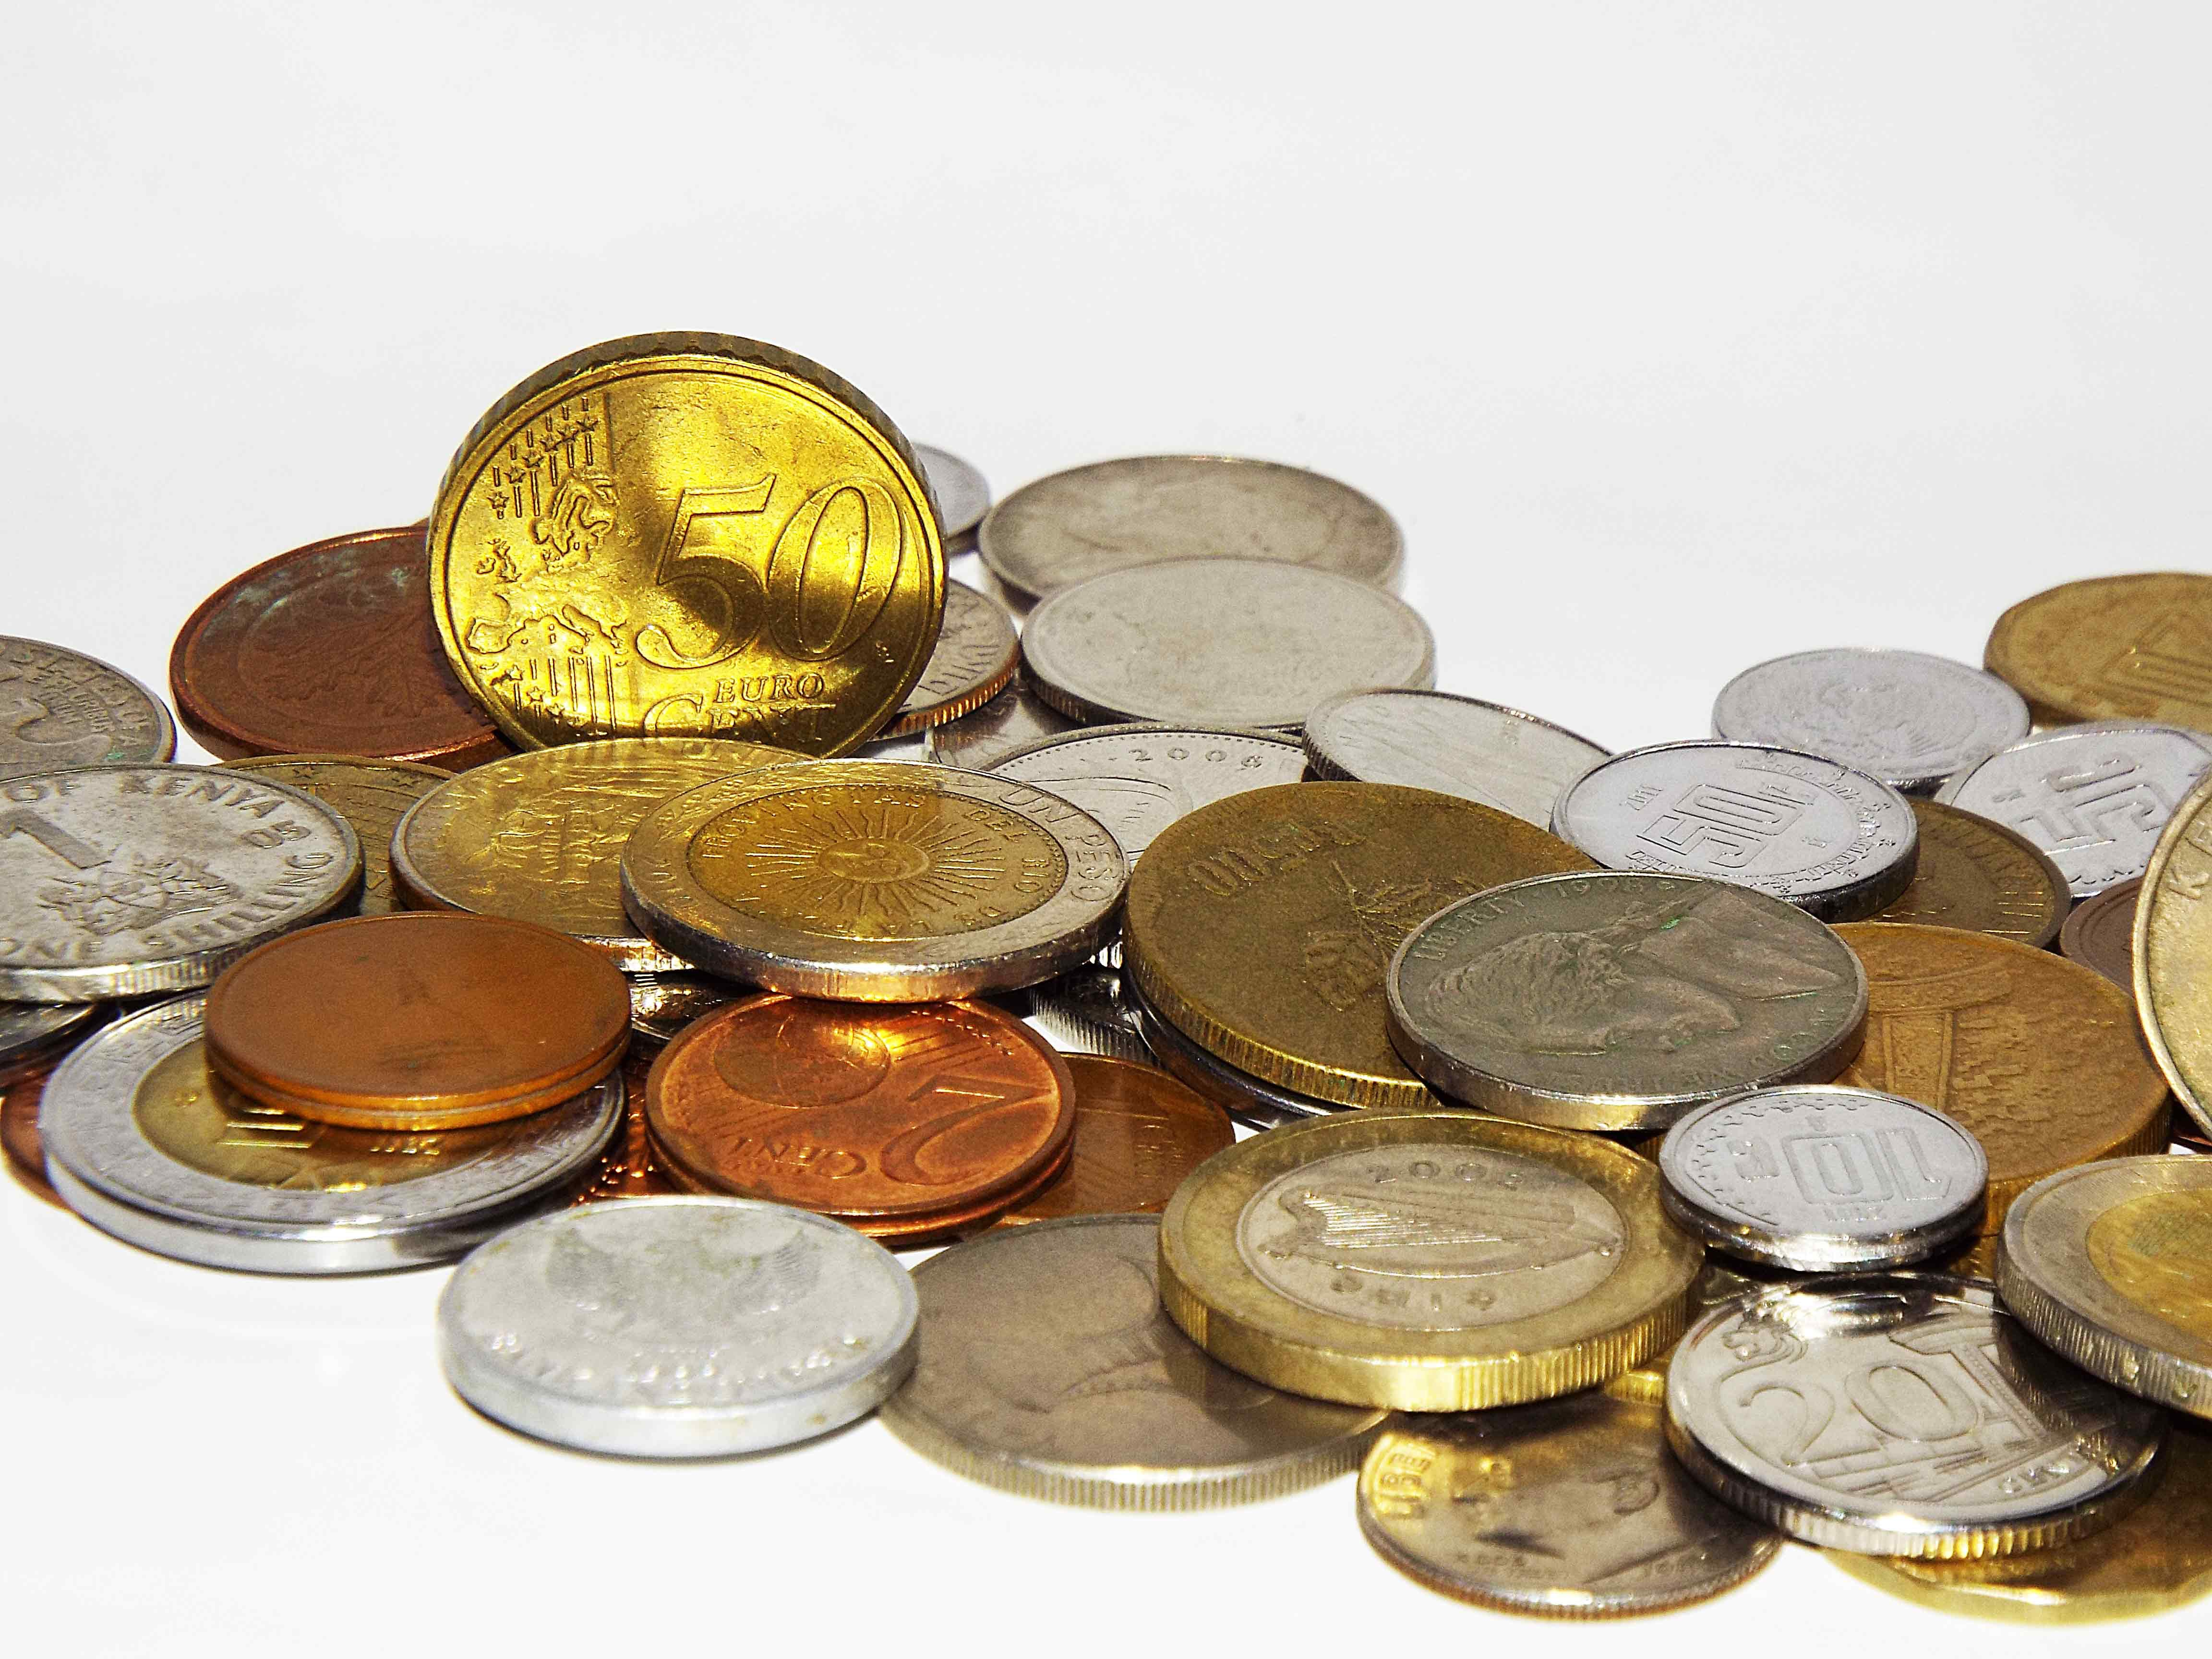 A pile of coins.